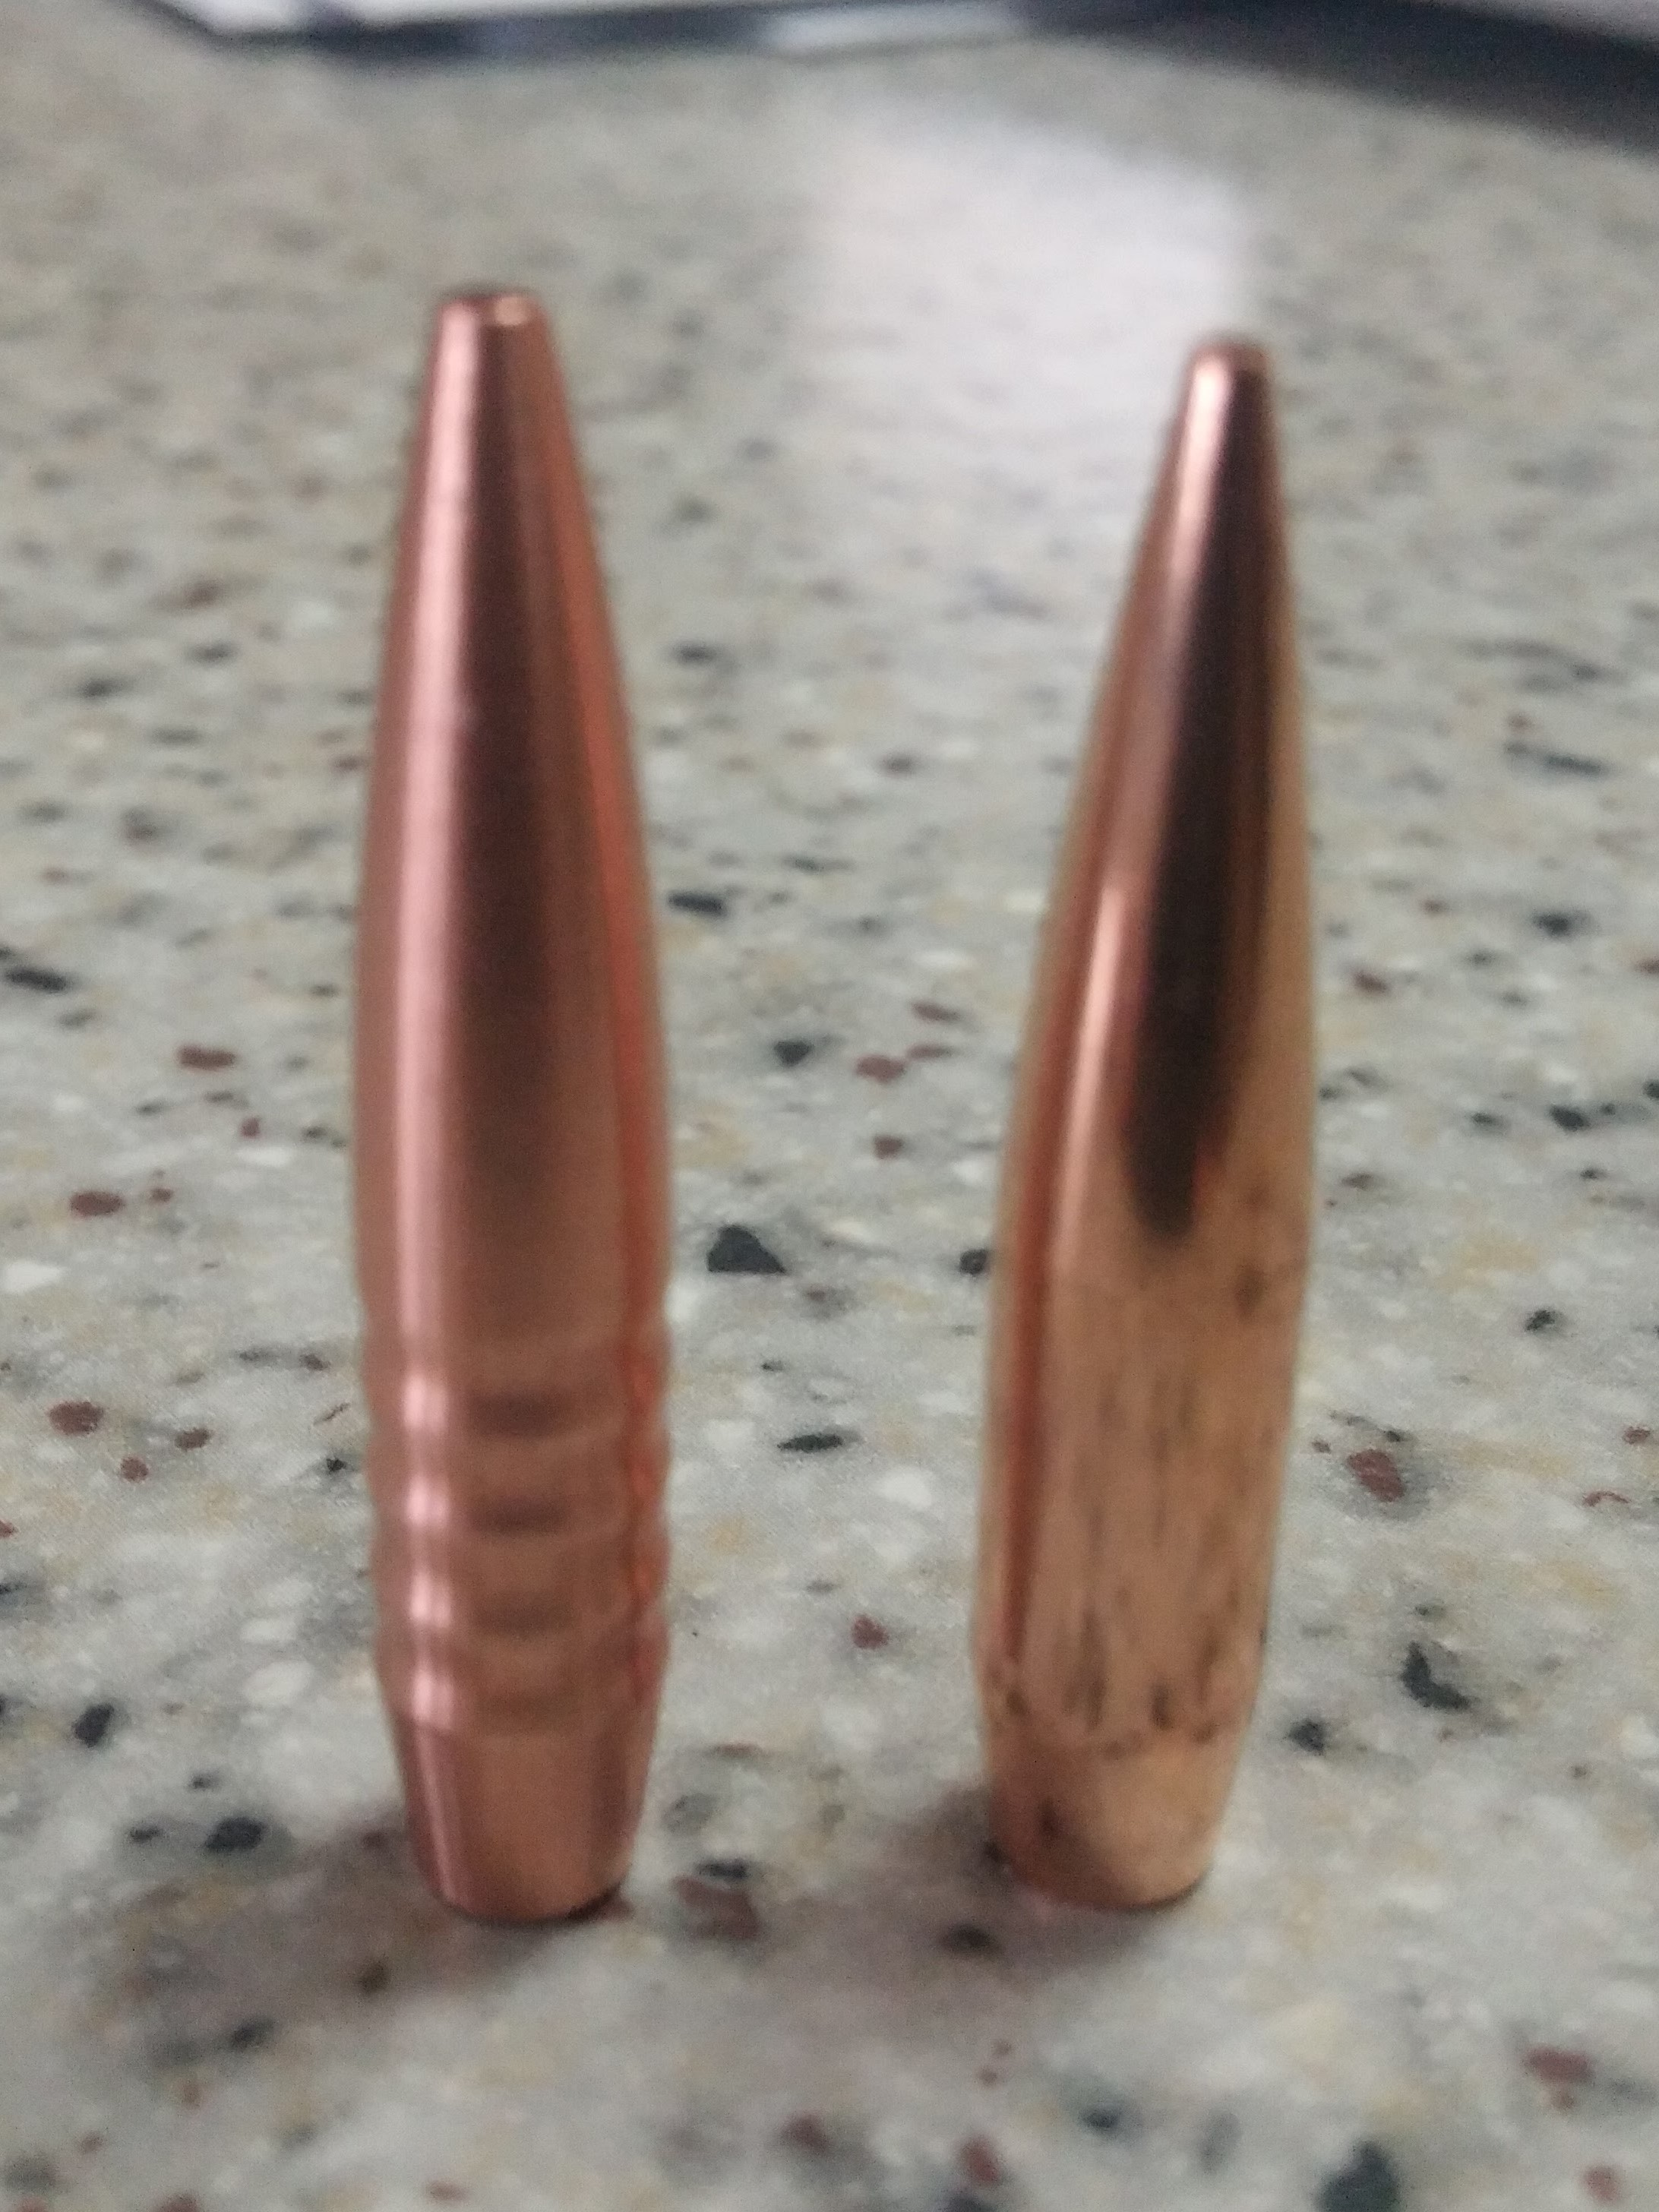 Hammer 125 gr 6 5 Solid Copper Bullets Review by Joel